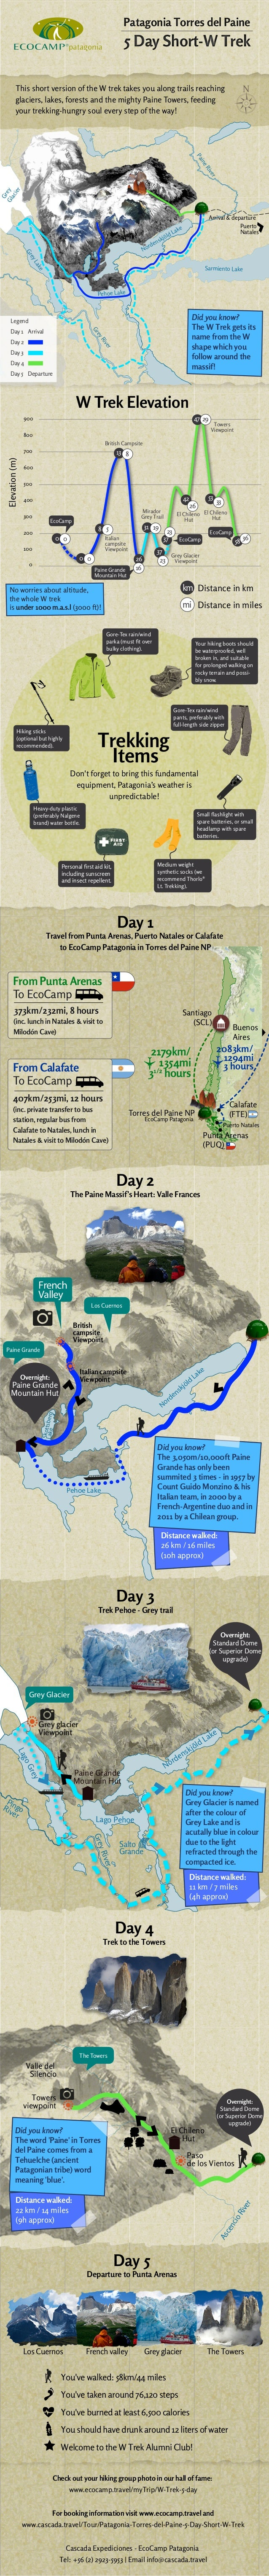 Patagonia Torres del Paine  5 Day Short-W Trek This short version of the W trek takes you along trails reaching glaciers, ...